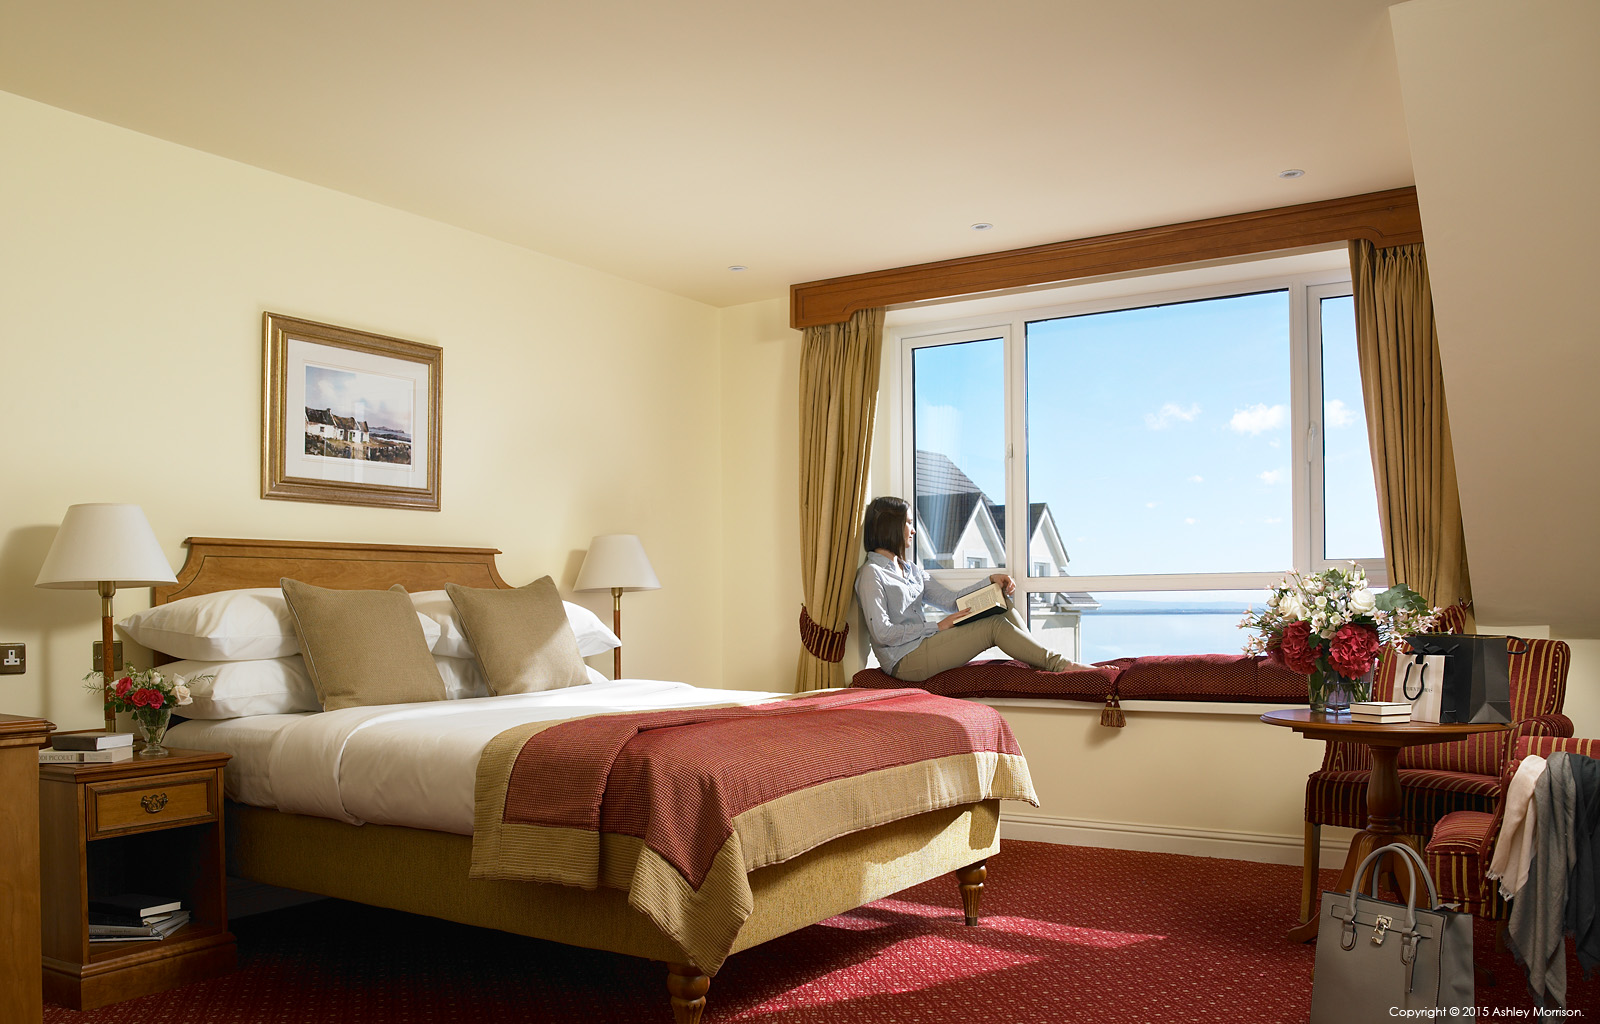 Atlantic View bedroom at the Galway Bay Hotel on the promenade at Salthill.